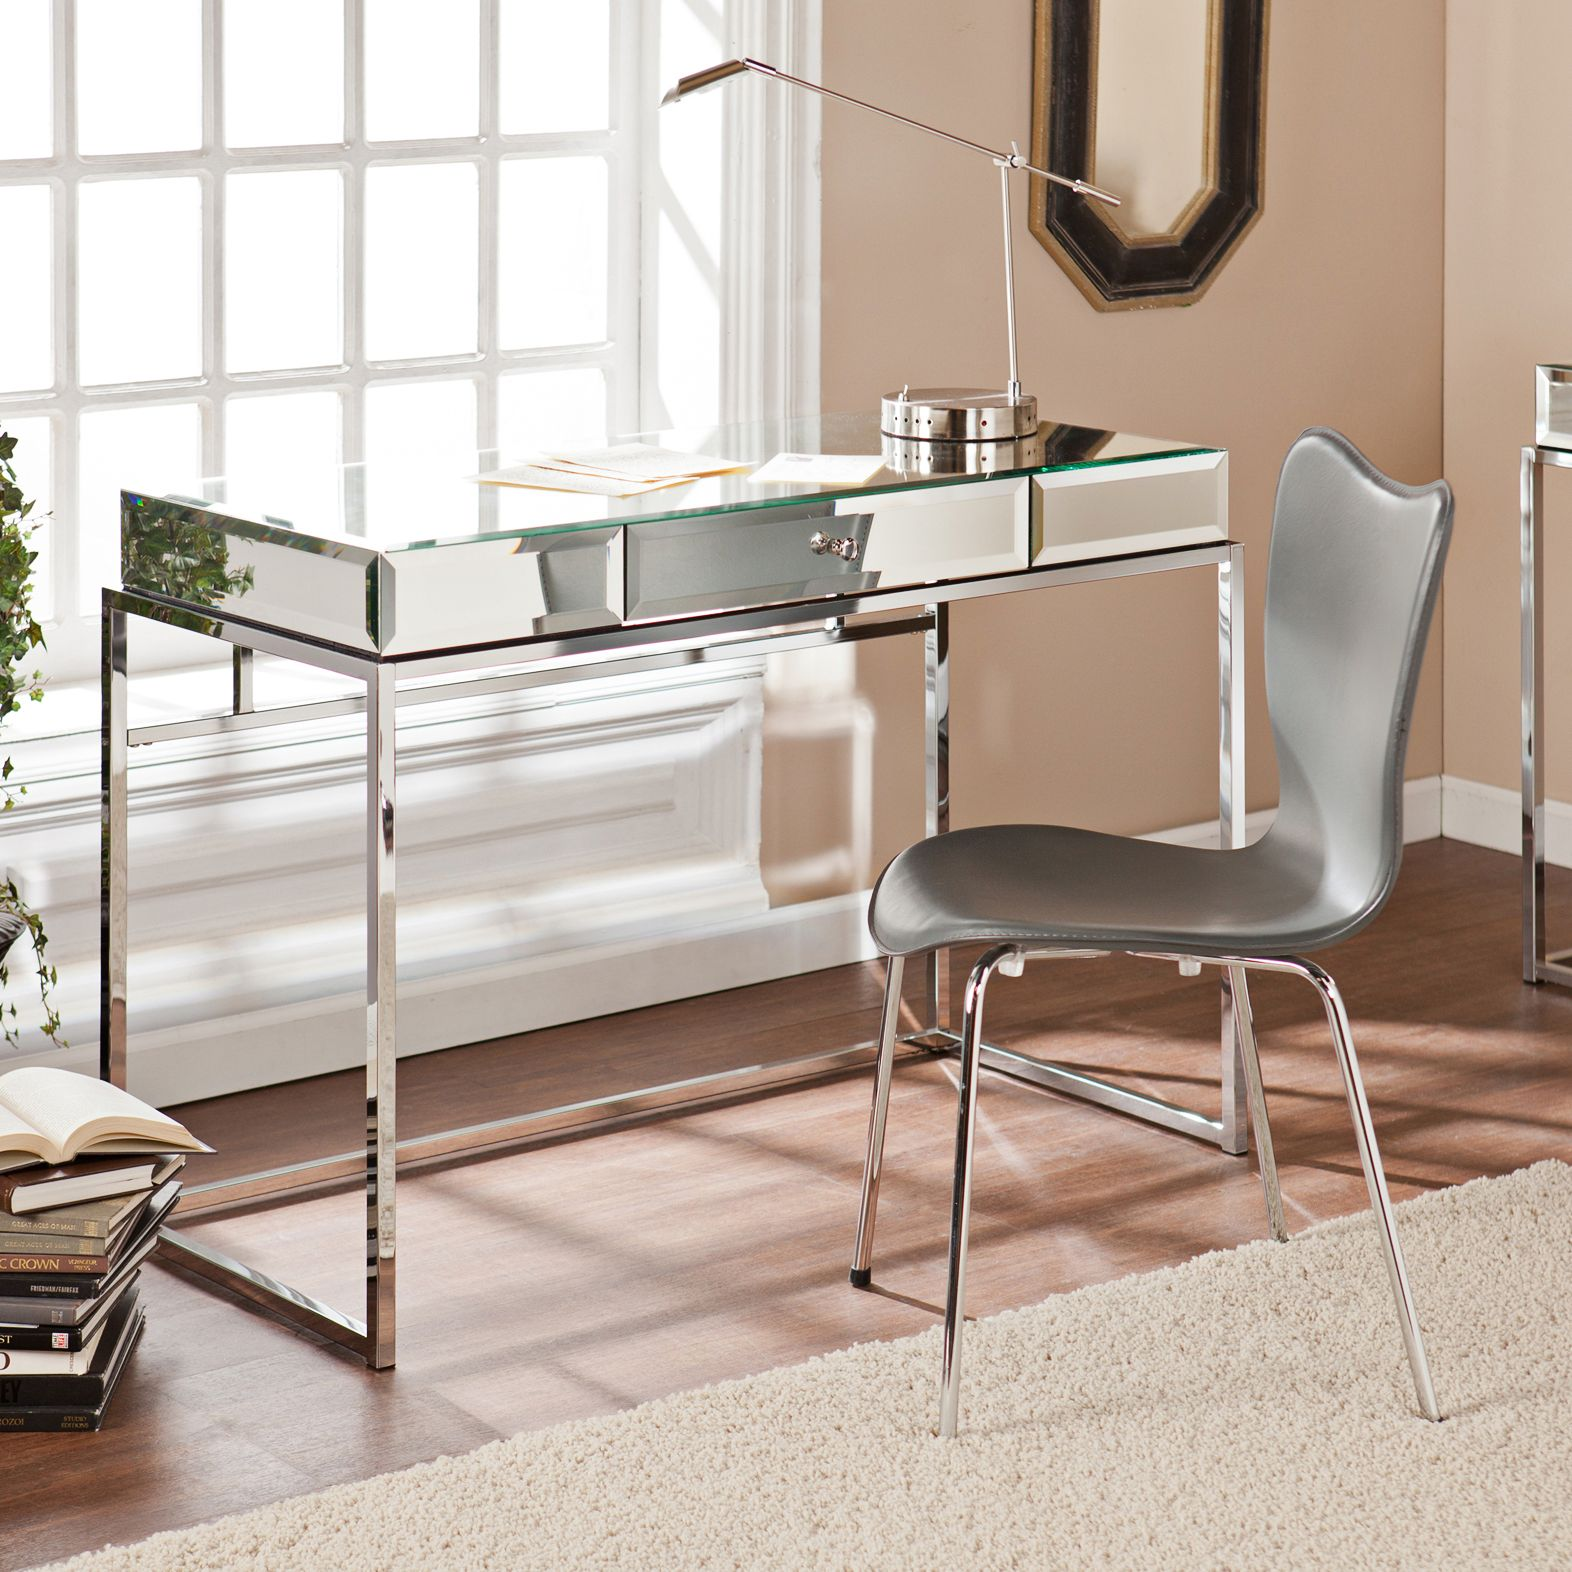 Mirrored office furniture Style Venetian Dana Mirrored And Chrome 1drawer Desk Cafe1905com Drawers Mirrored Office Furniture Lamps Plus